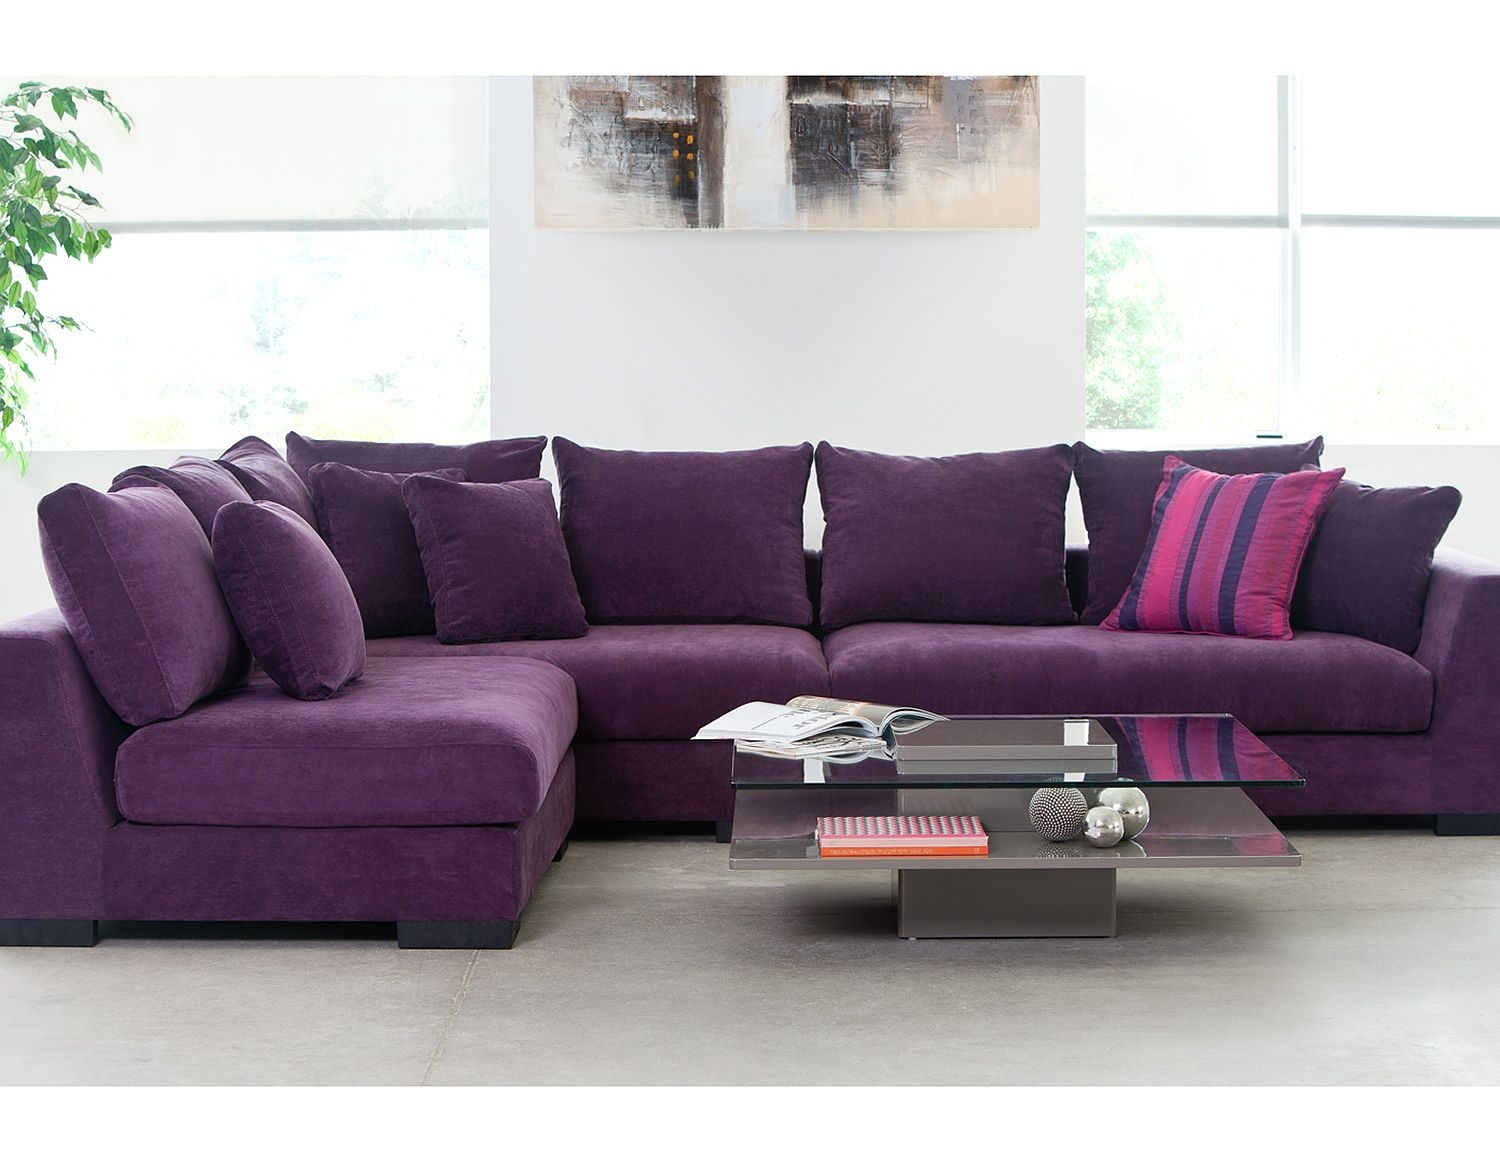 Living Room Sectional Sofas Cooper Purple Faints A Couch Within Colorful Sectional Sofas (#9 of 12)